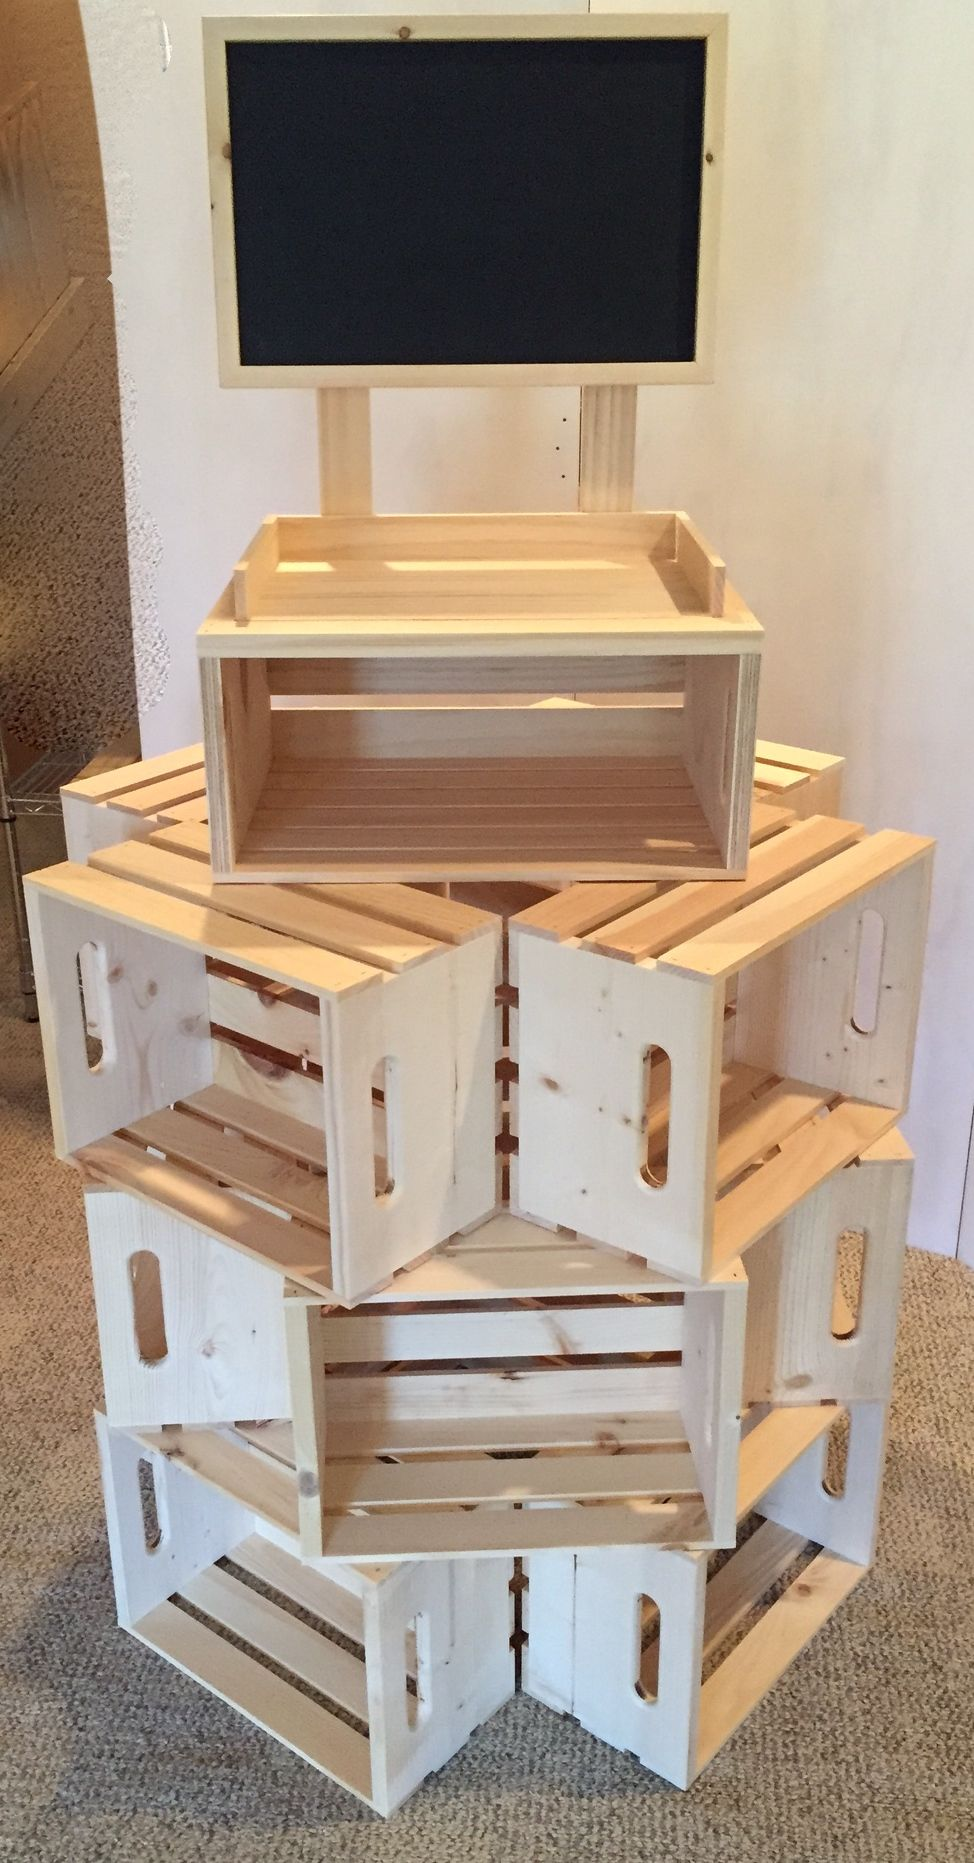 4 multi sided rustic crate store display chalkboard retail for Craft shows on tv